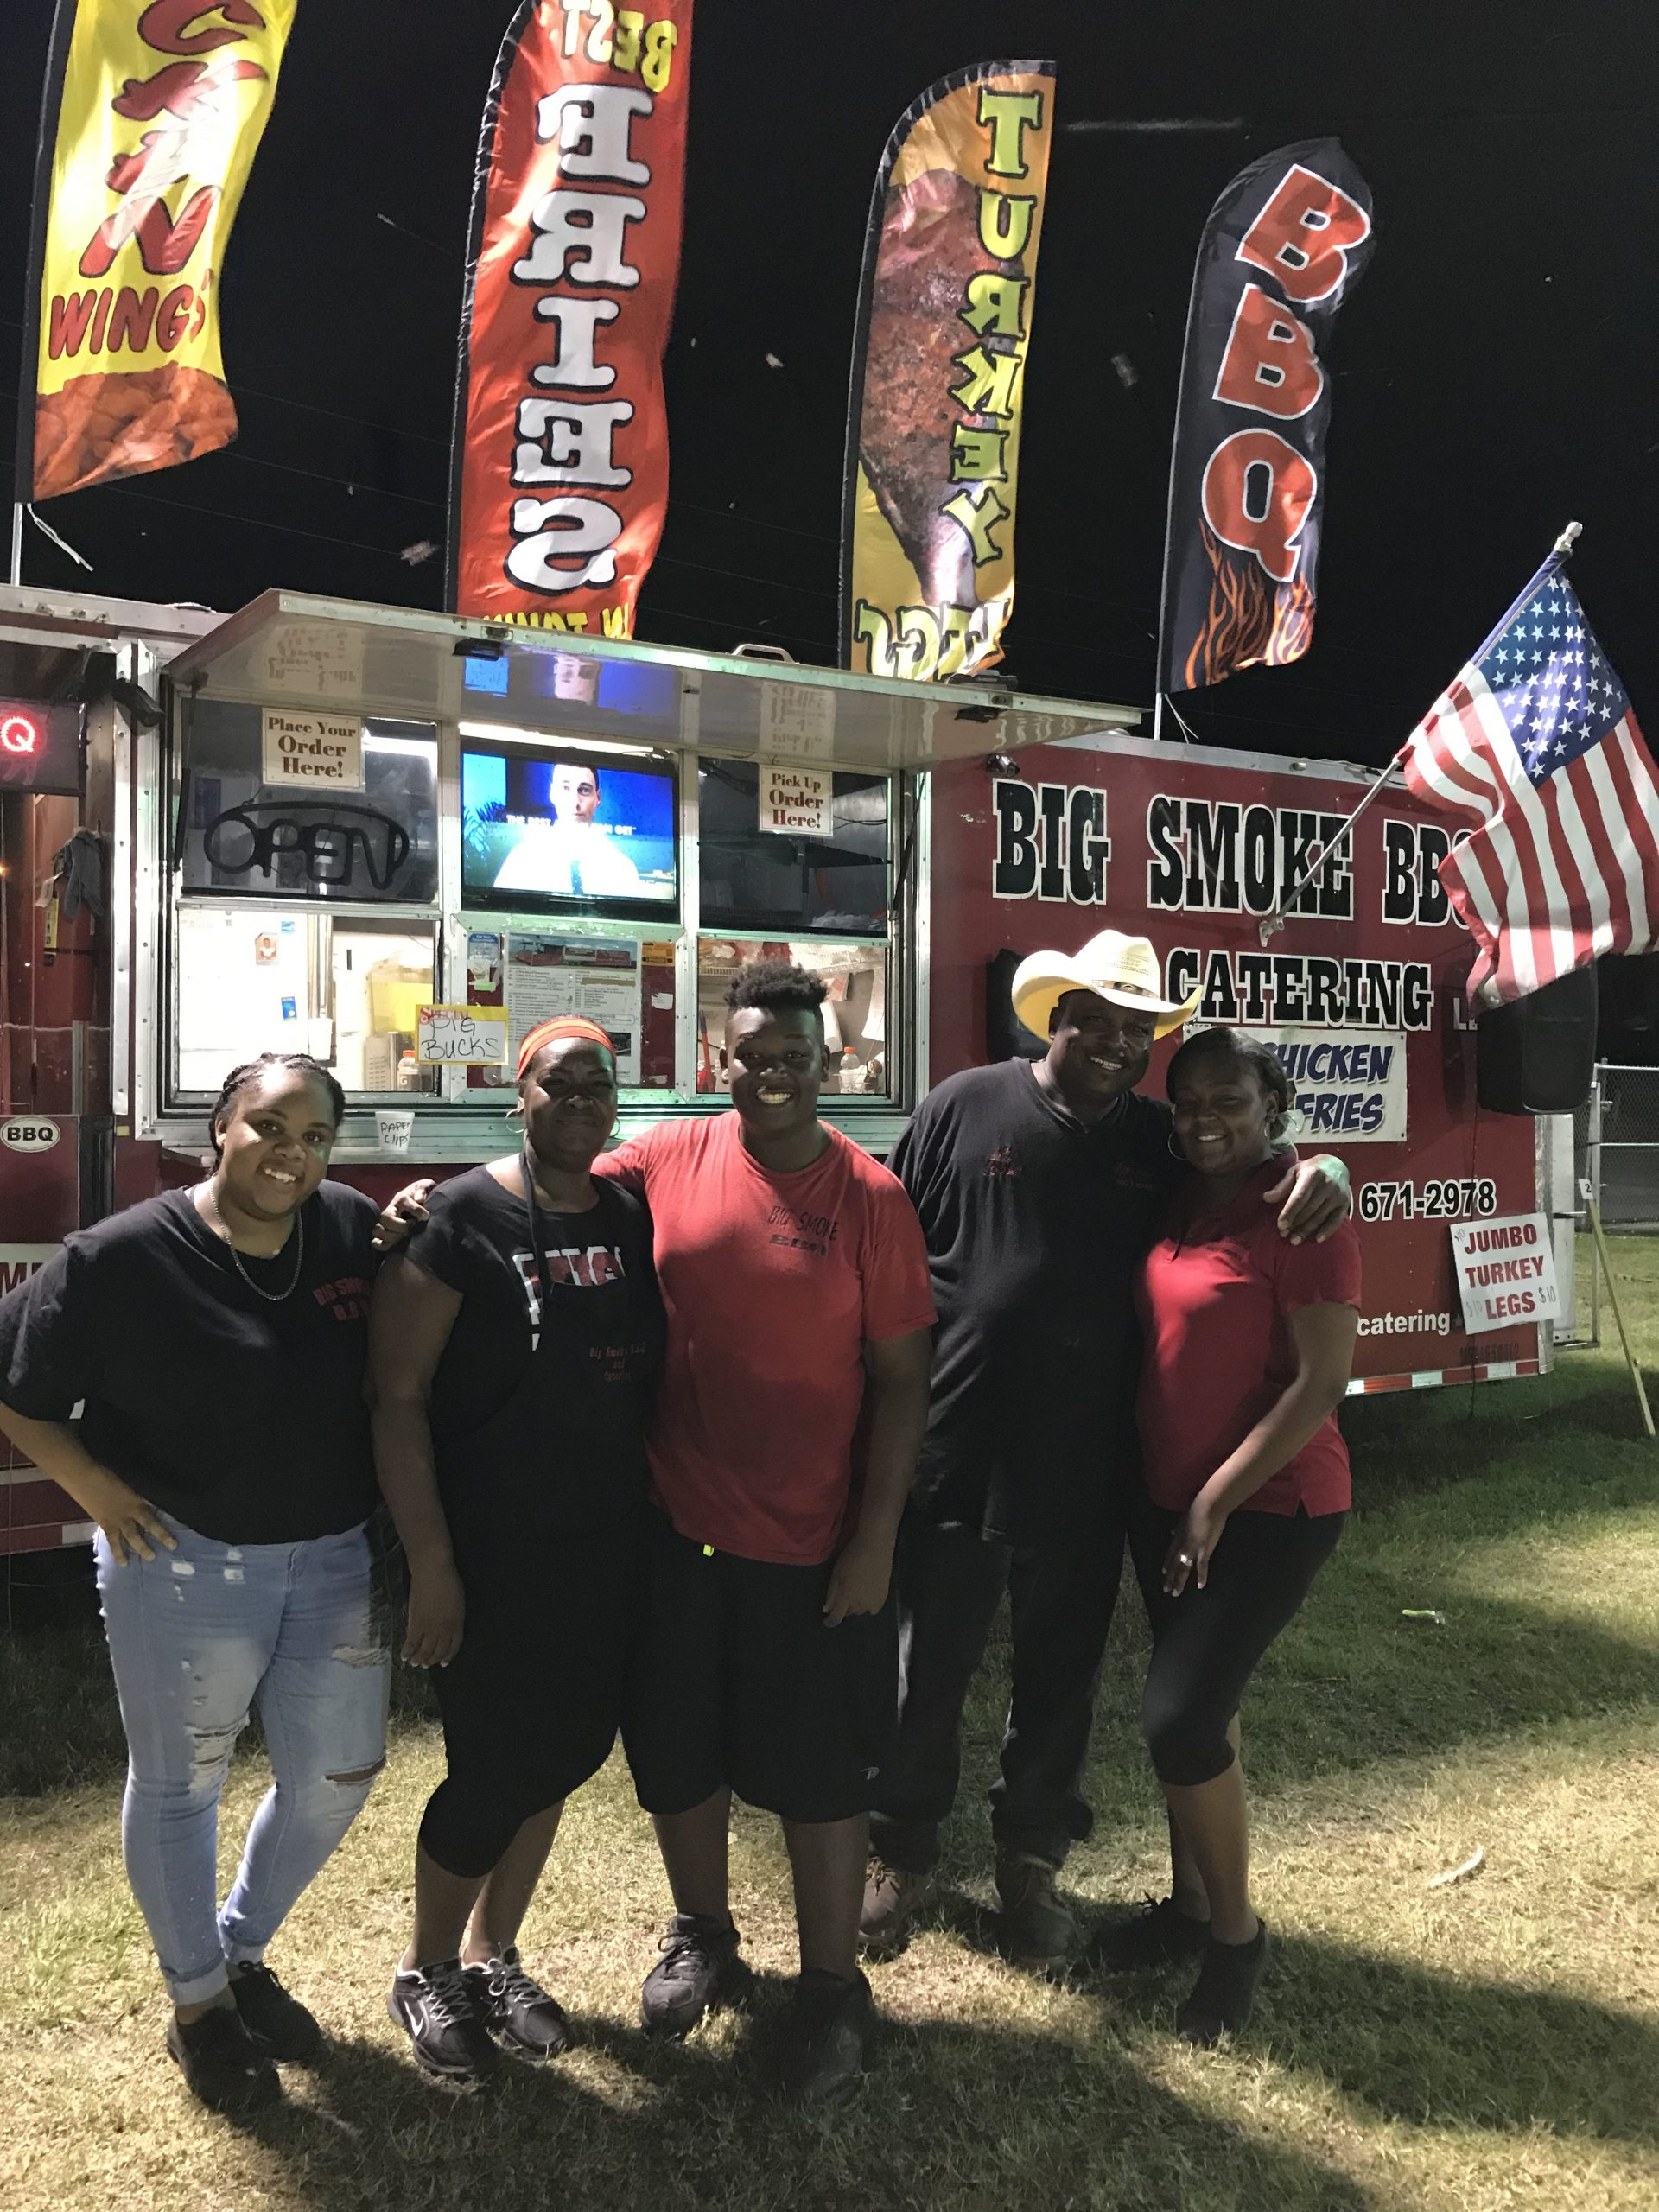 Big Smoke BBQ and Catering